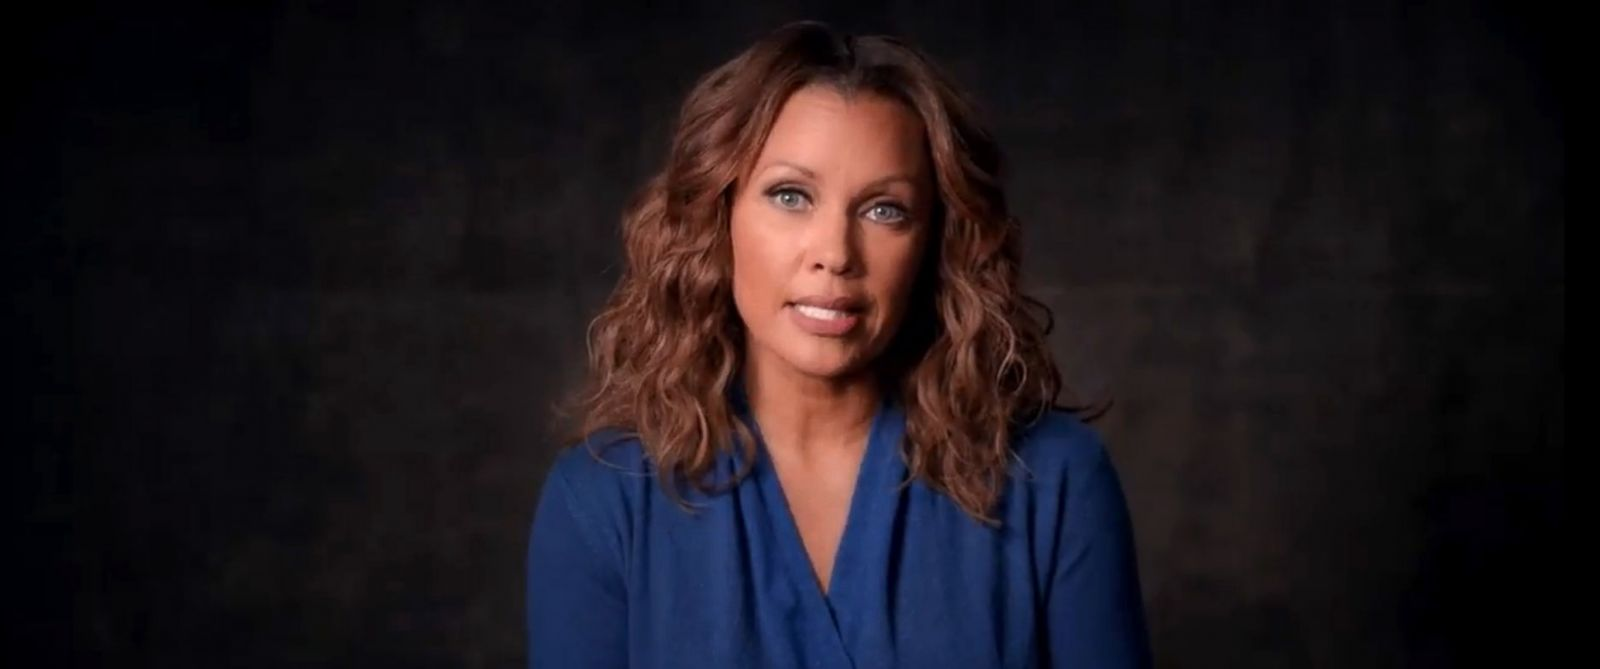 "PHOTO: Actress and former Miss America Vanessa Williams speaks about being molested by a woman when she was 10 years old on the ""Oprah Presents Master Class"" program on OWN."